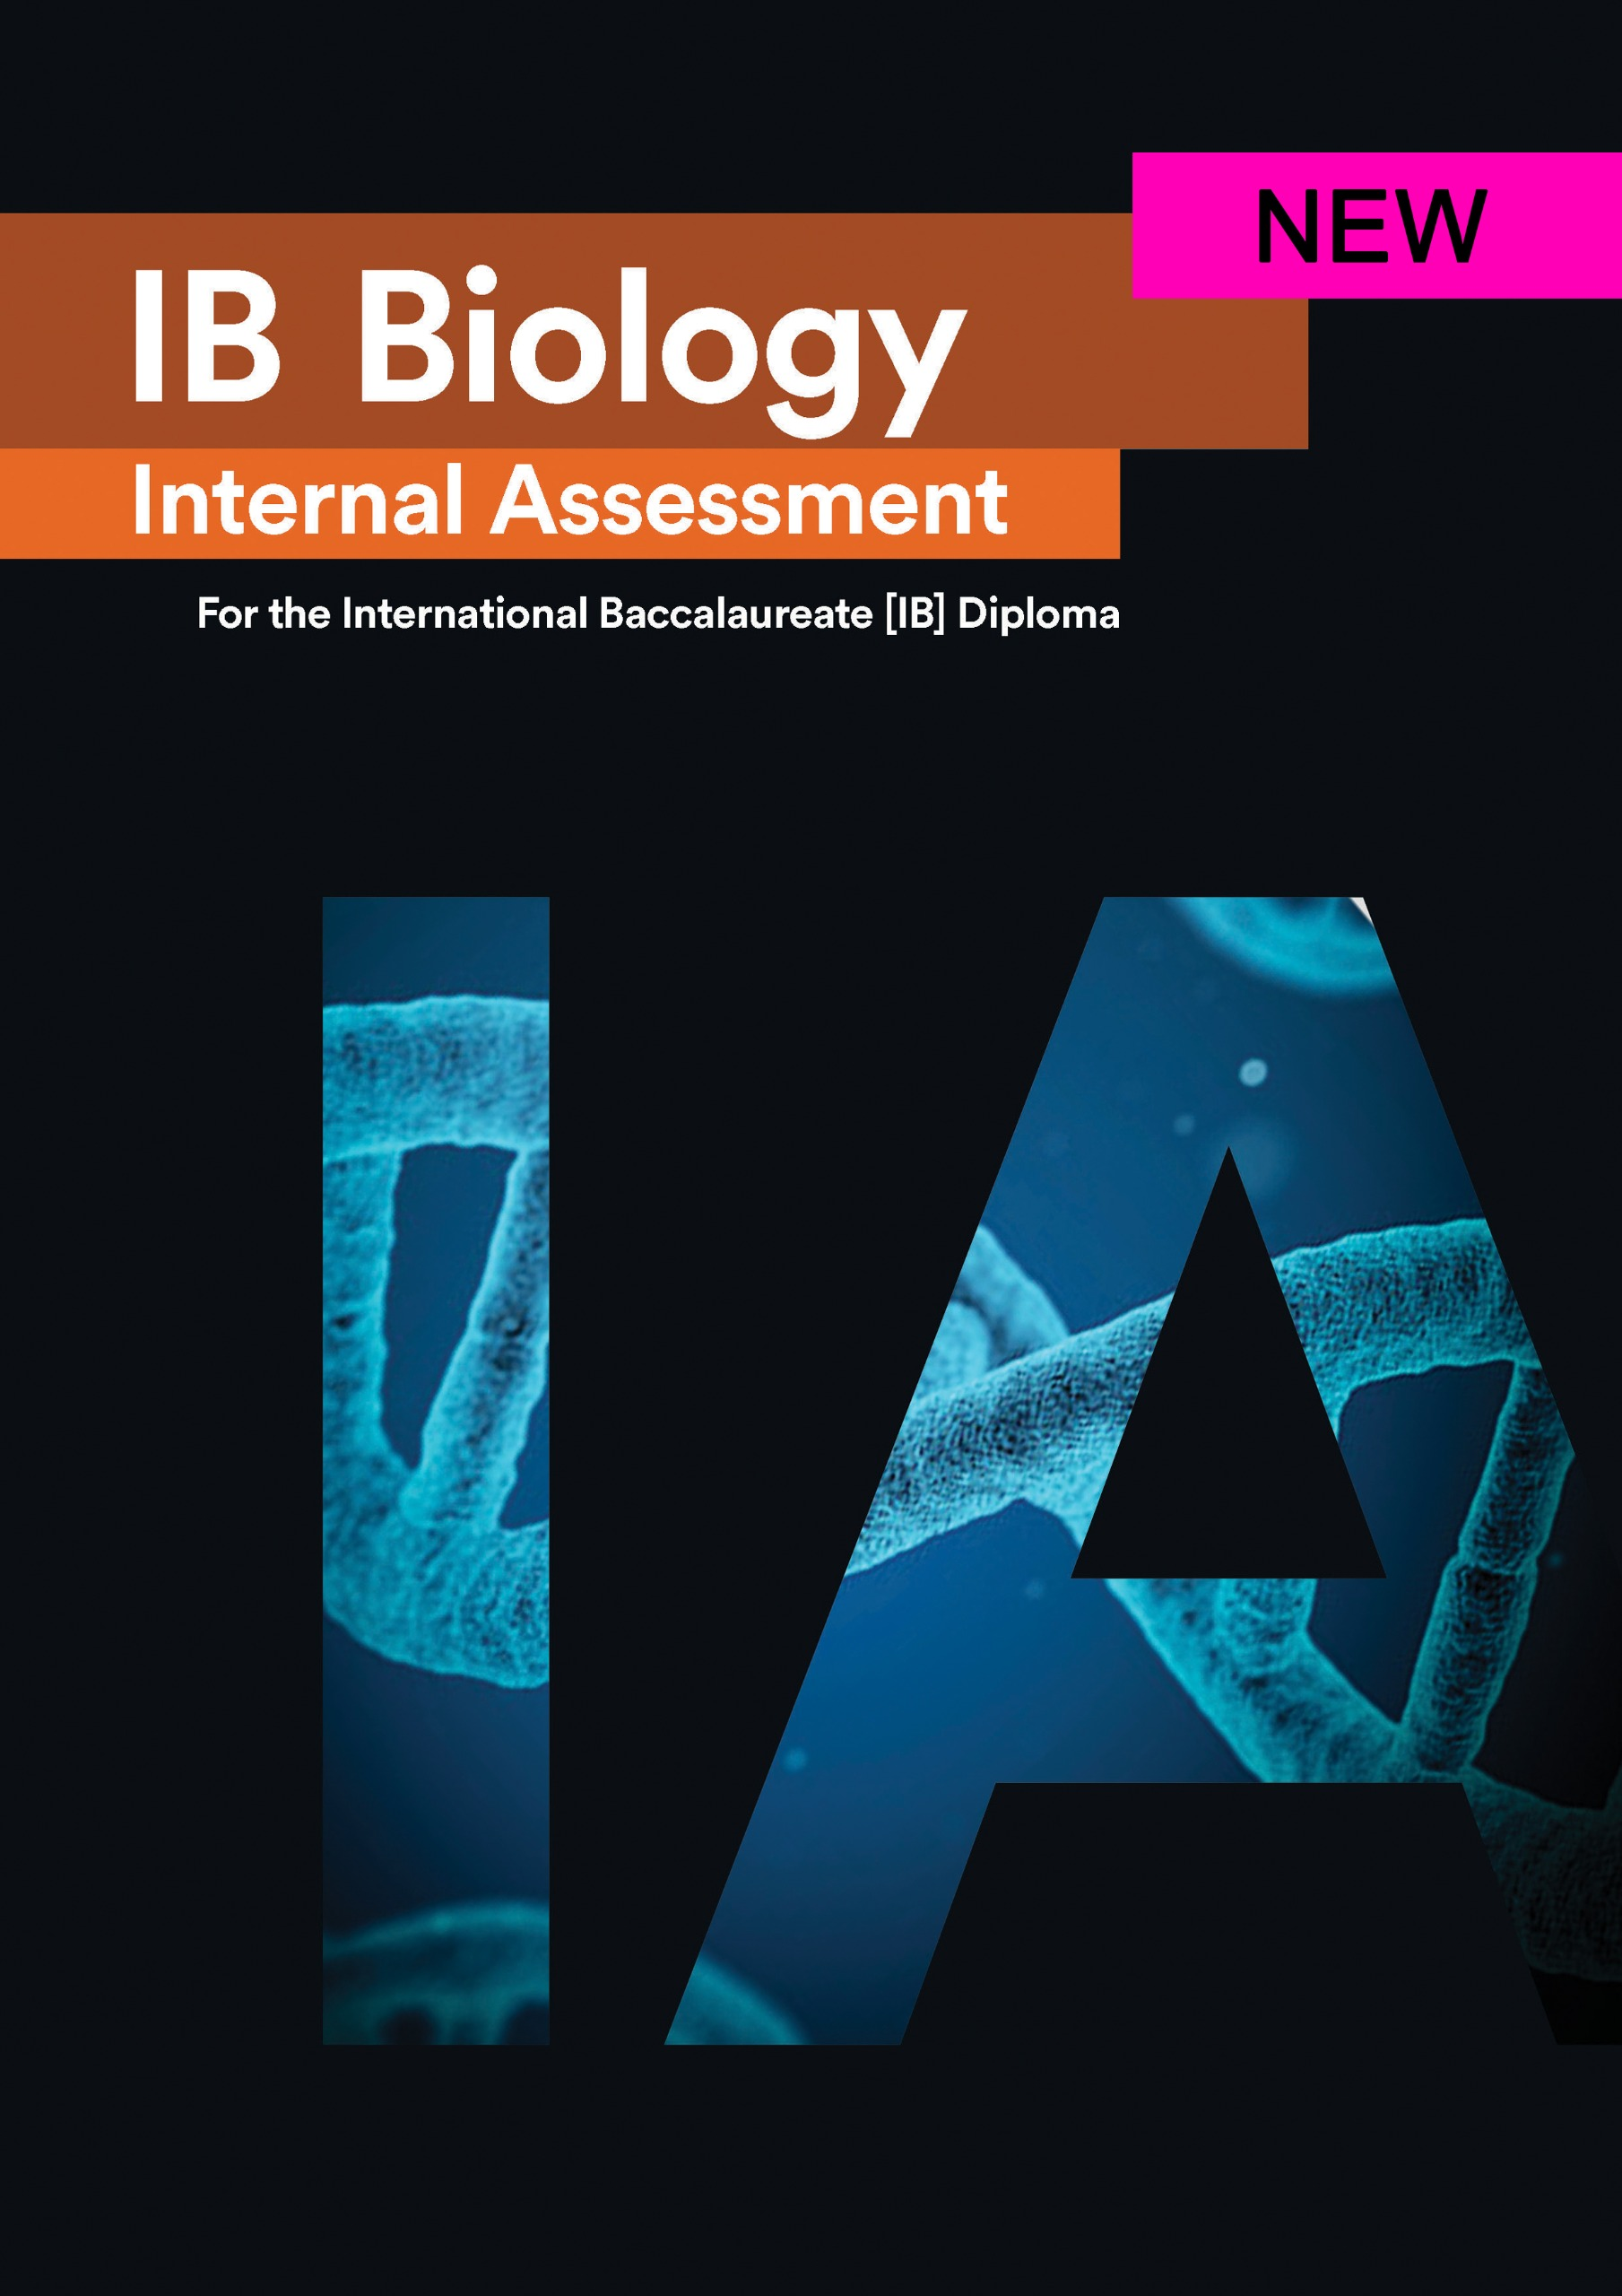 IB Biology Internal Assessment [IA]: Seven Excellent IAs for the International Baccalaureate [IB]